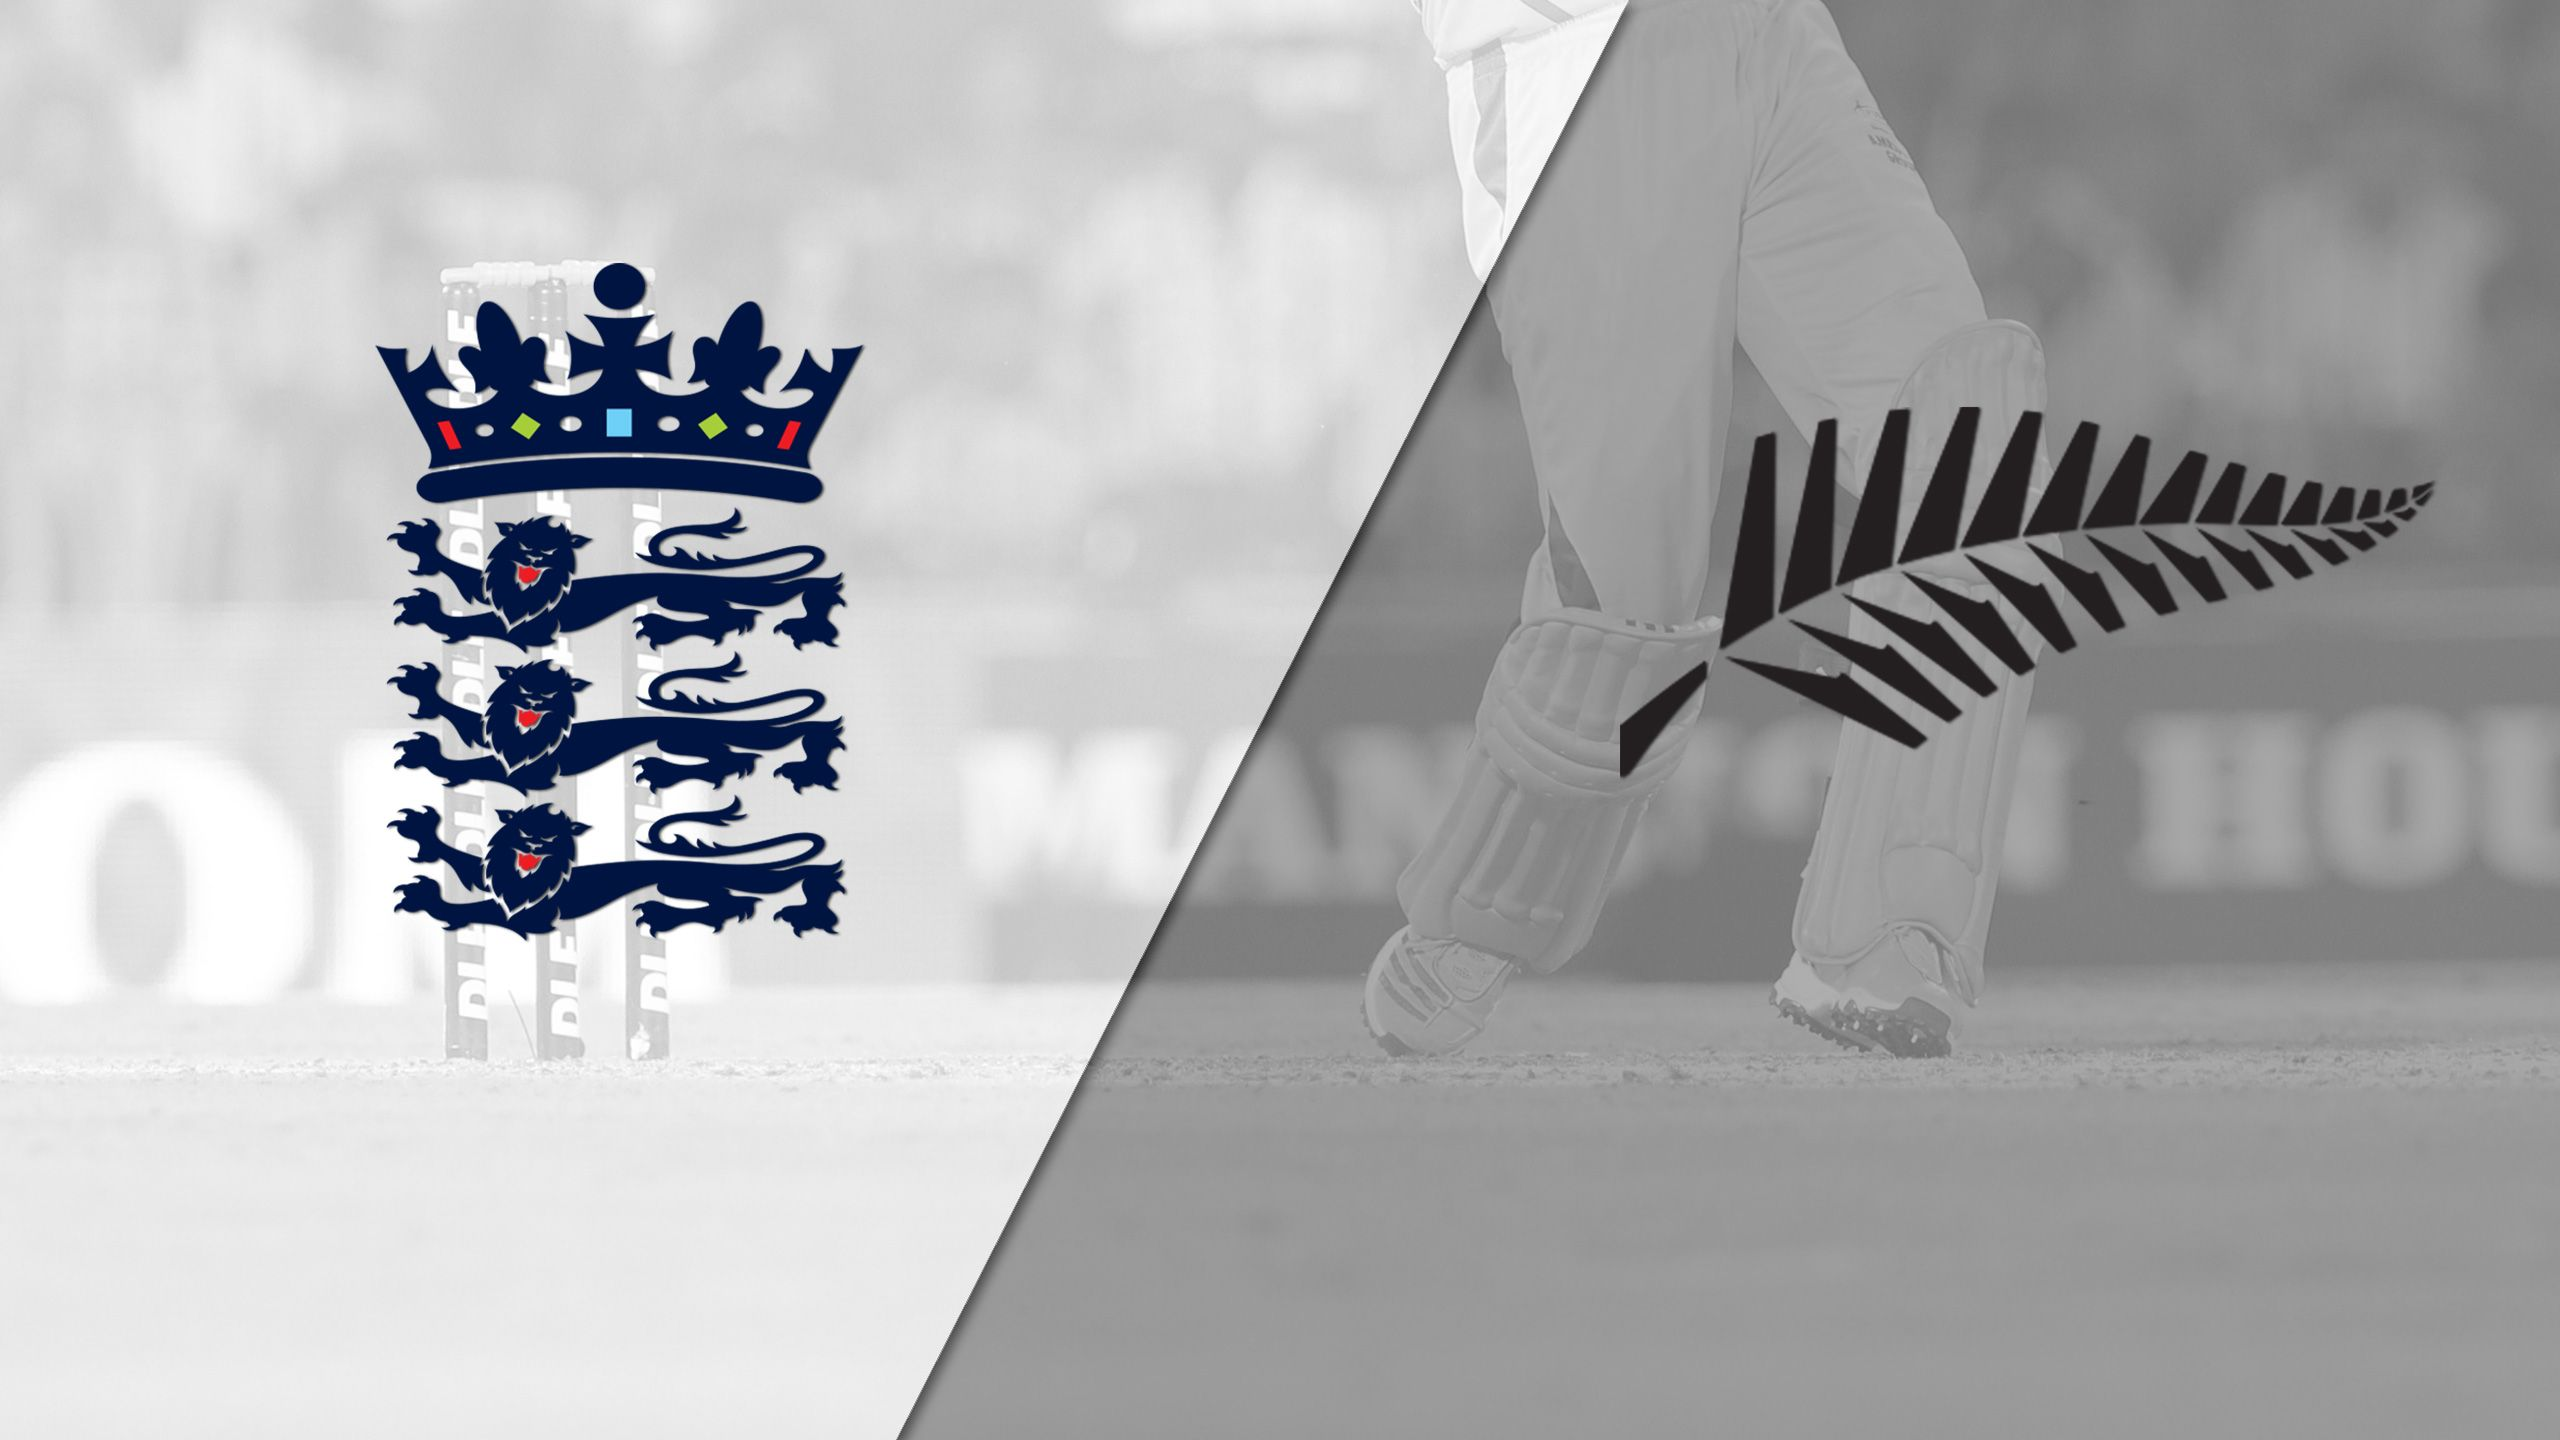 England vs. New Zealand (1st ODI) (International Cricket)